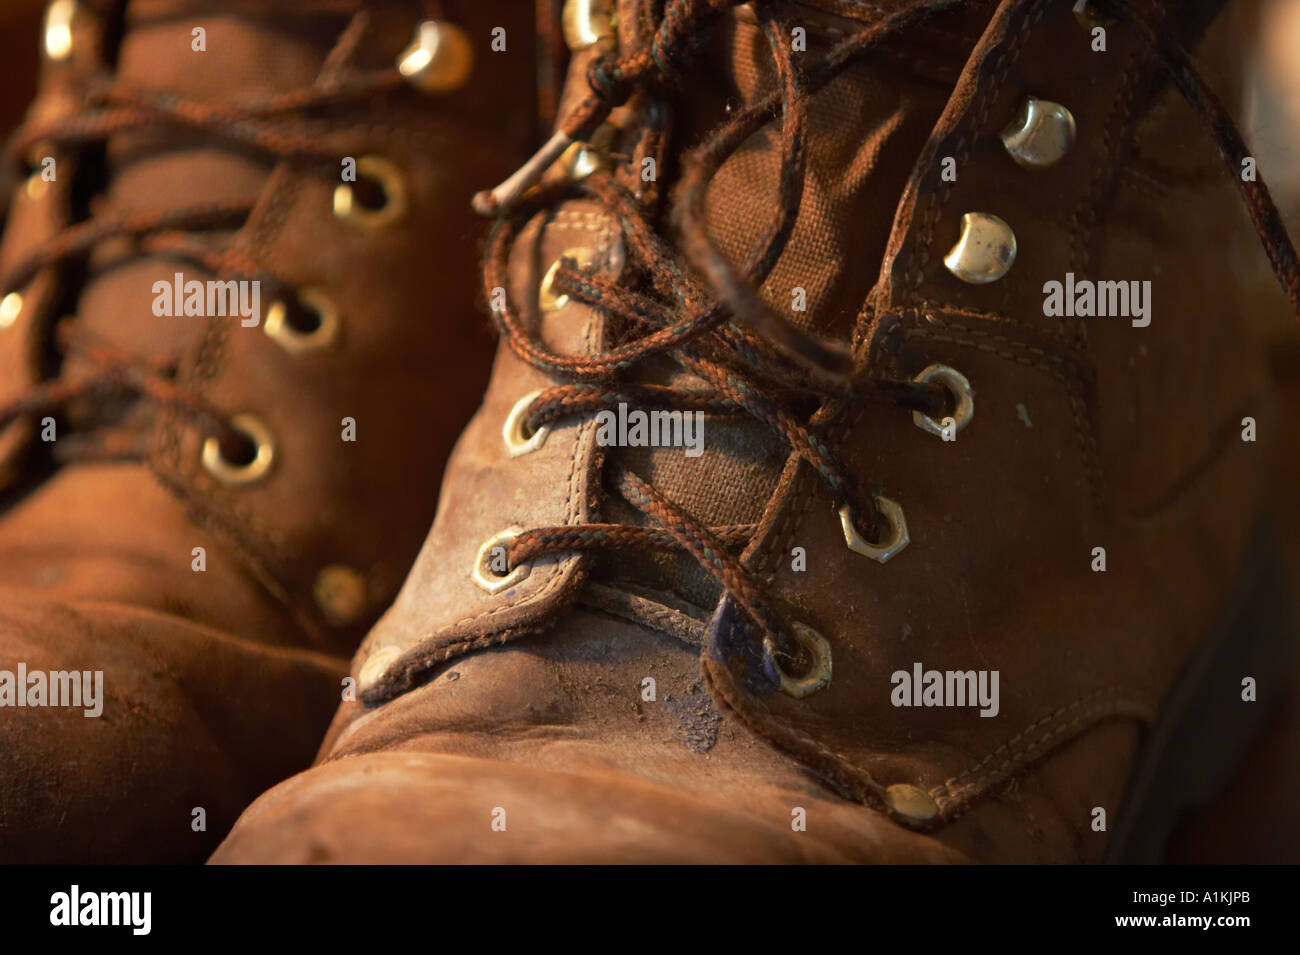 377fcc8a9d1 A pair of well-worn leather boots Stock Photo: 5875946 - Alamy